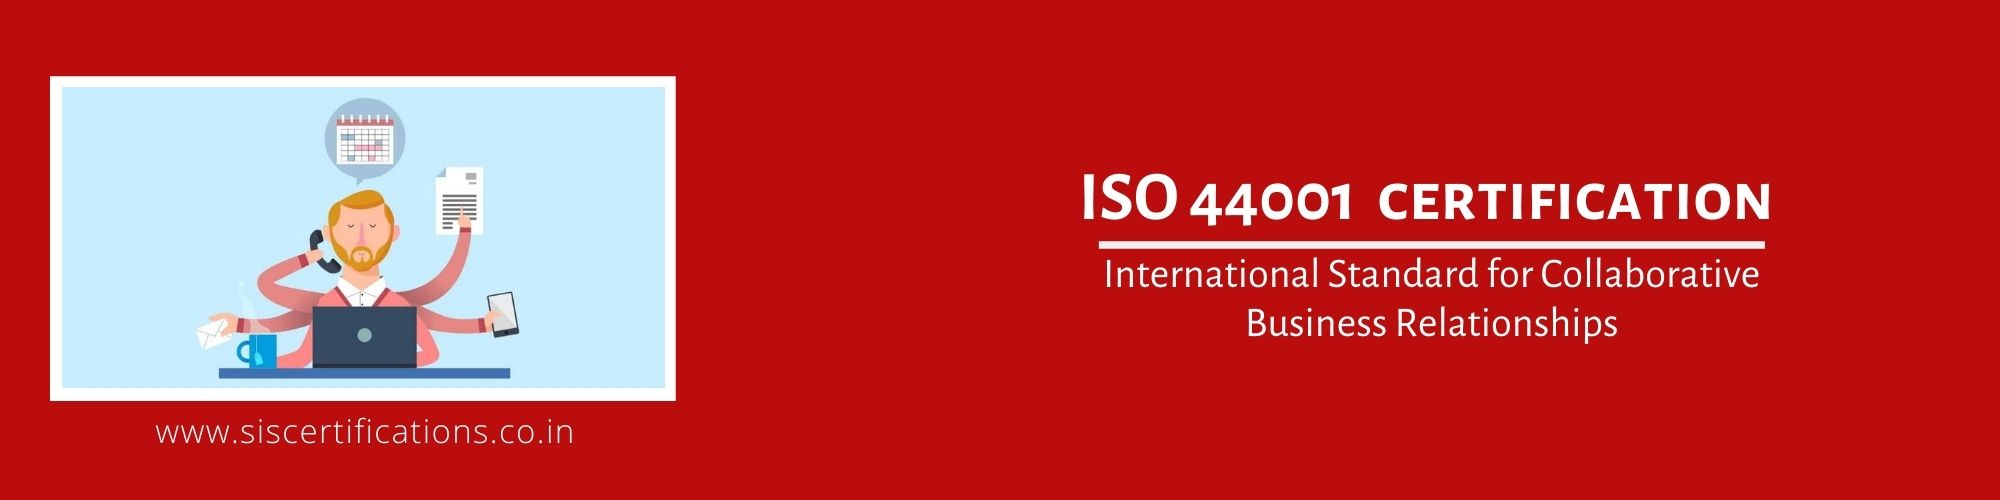 ISO 44001 Certification